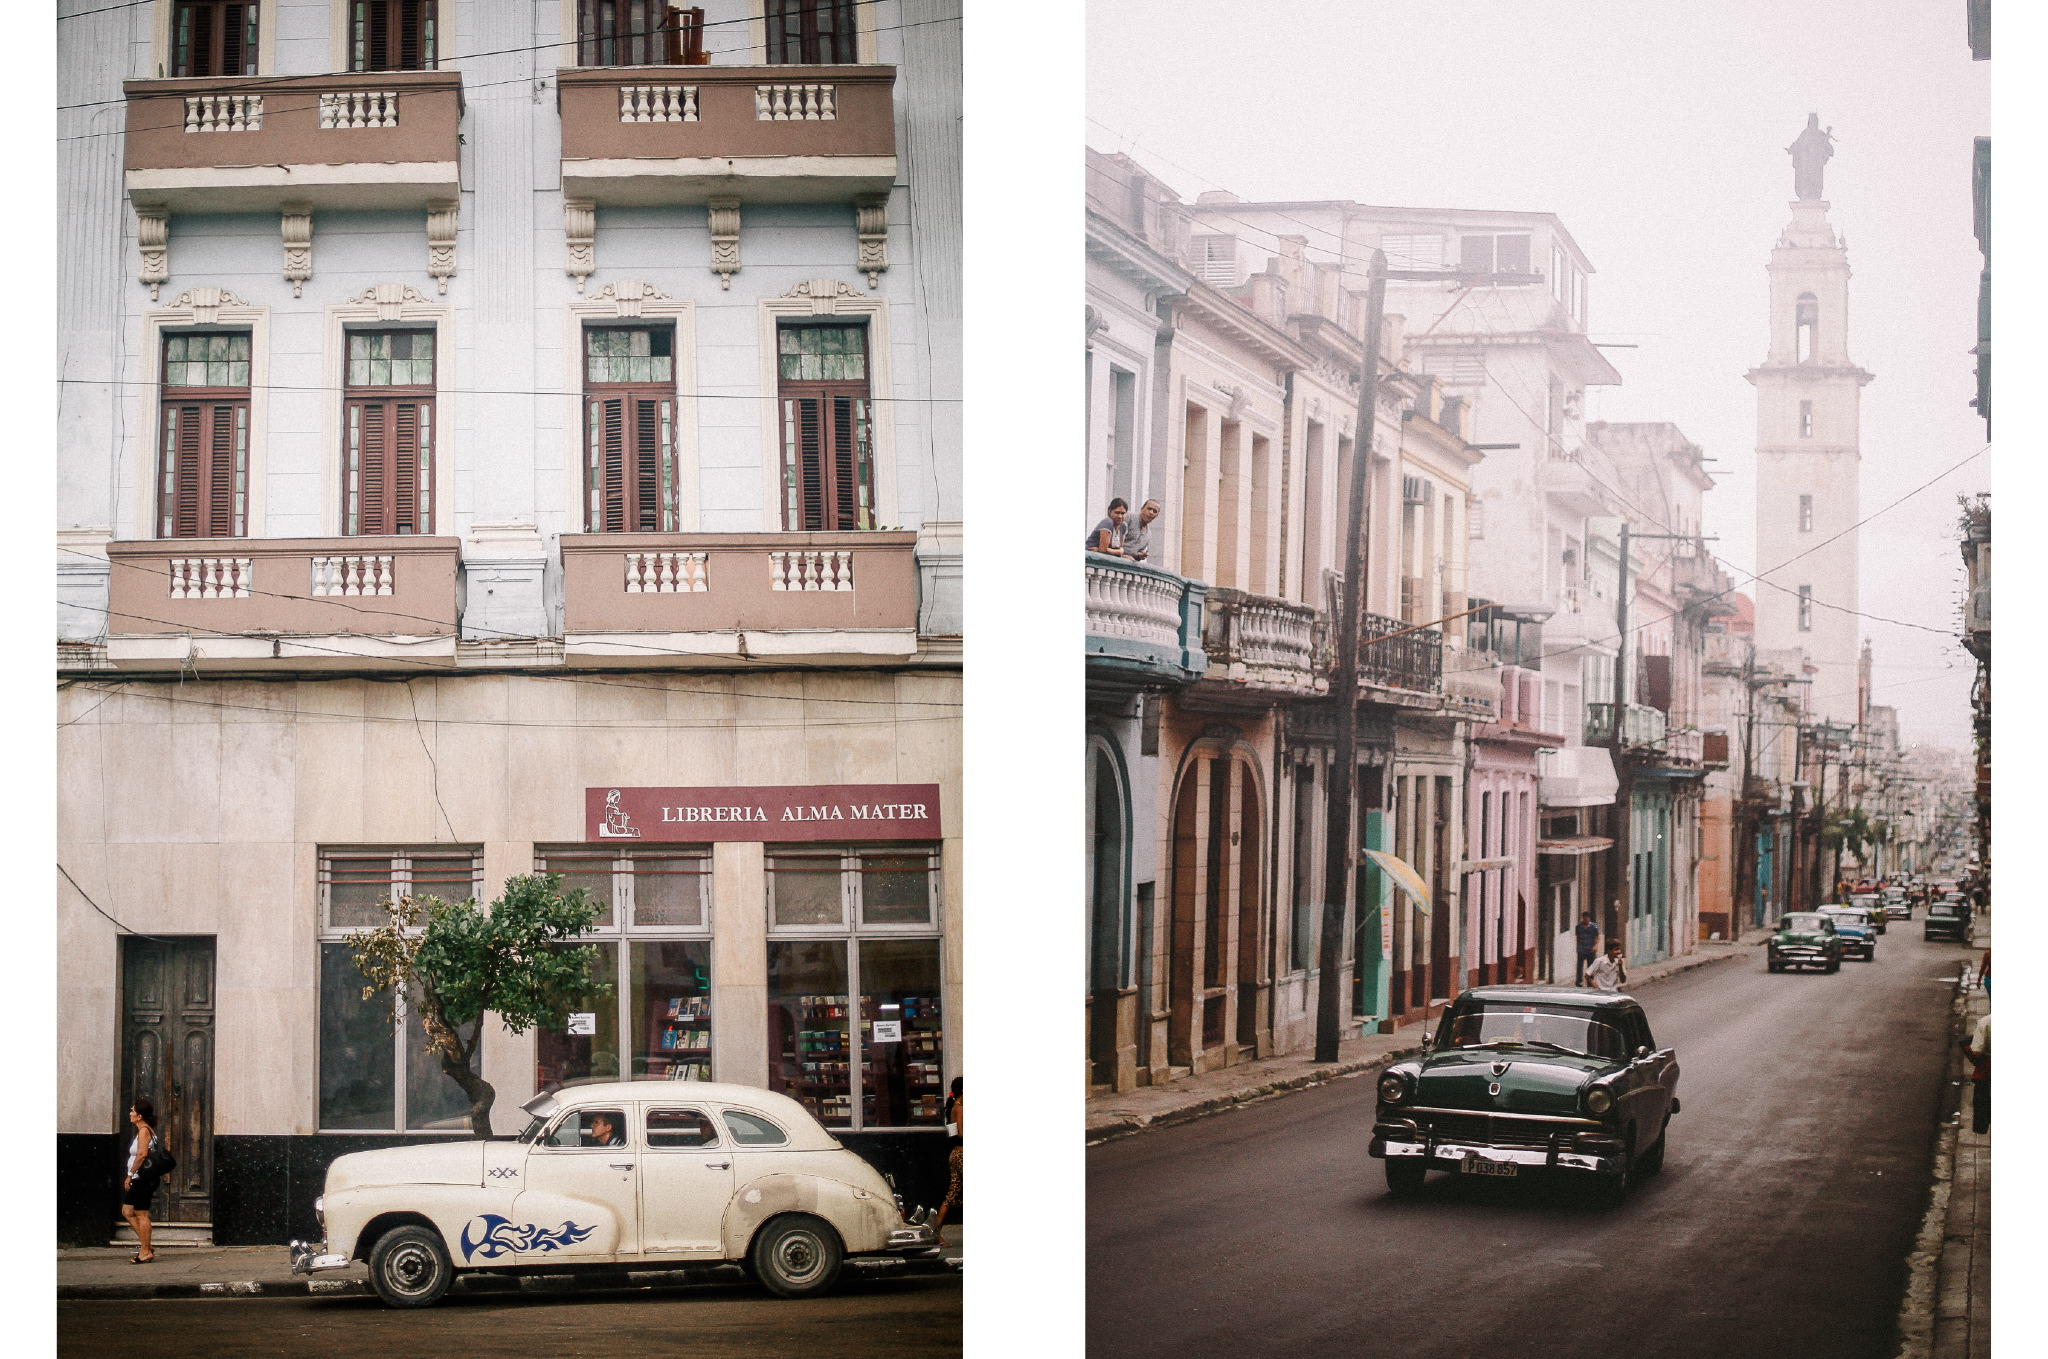 san diego wedding   photographer | collage of white car parked on curb and dark green car   driving